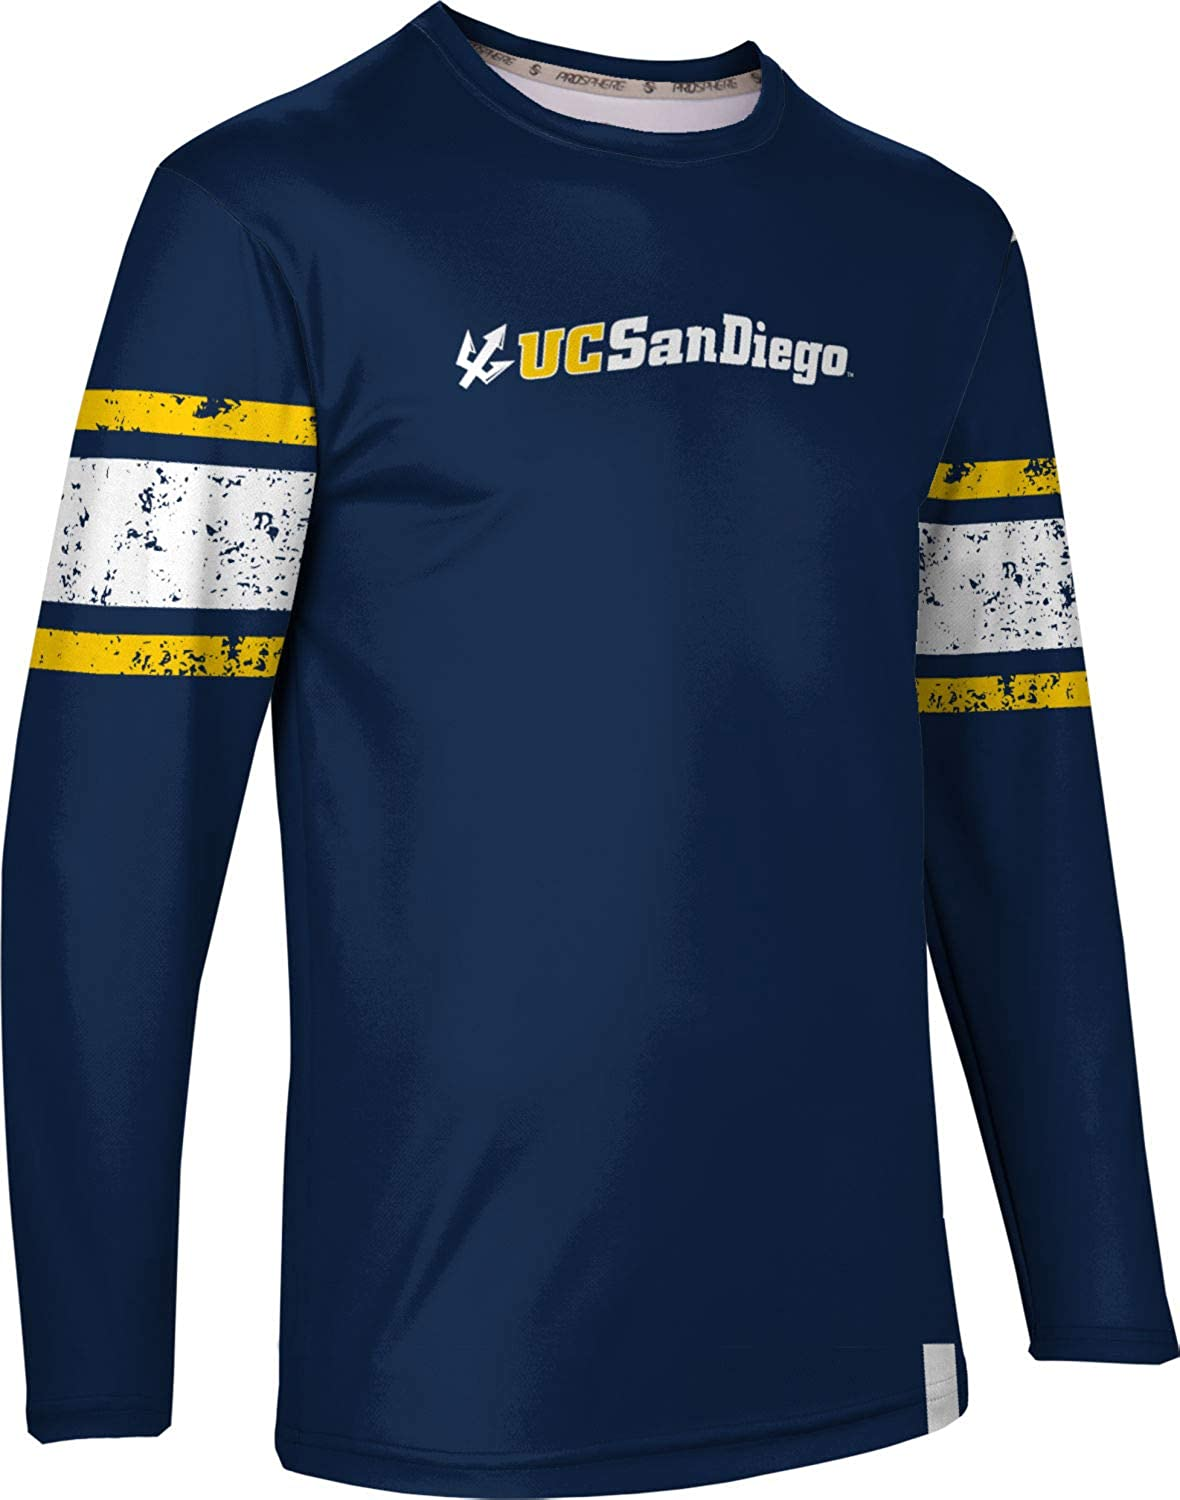 End Zone San Diego Mens Long Sleeve Tee ProSphere University of California